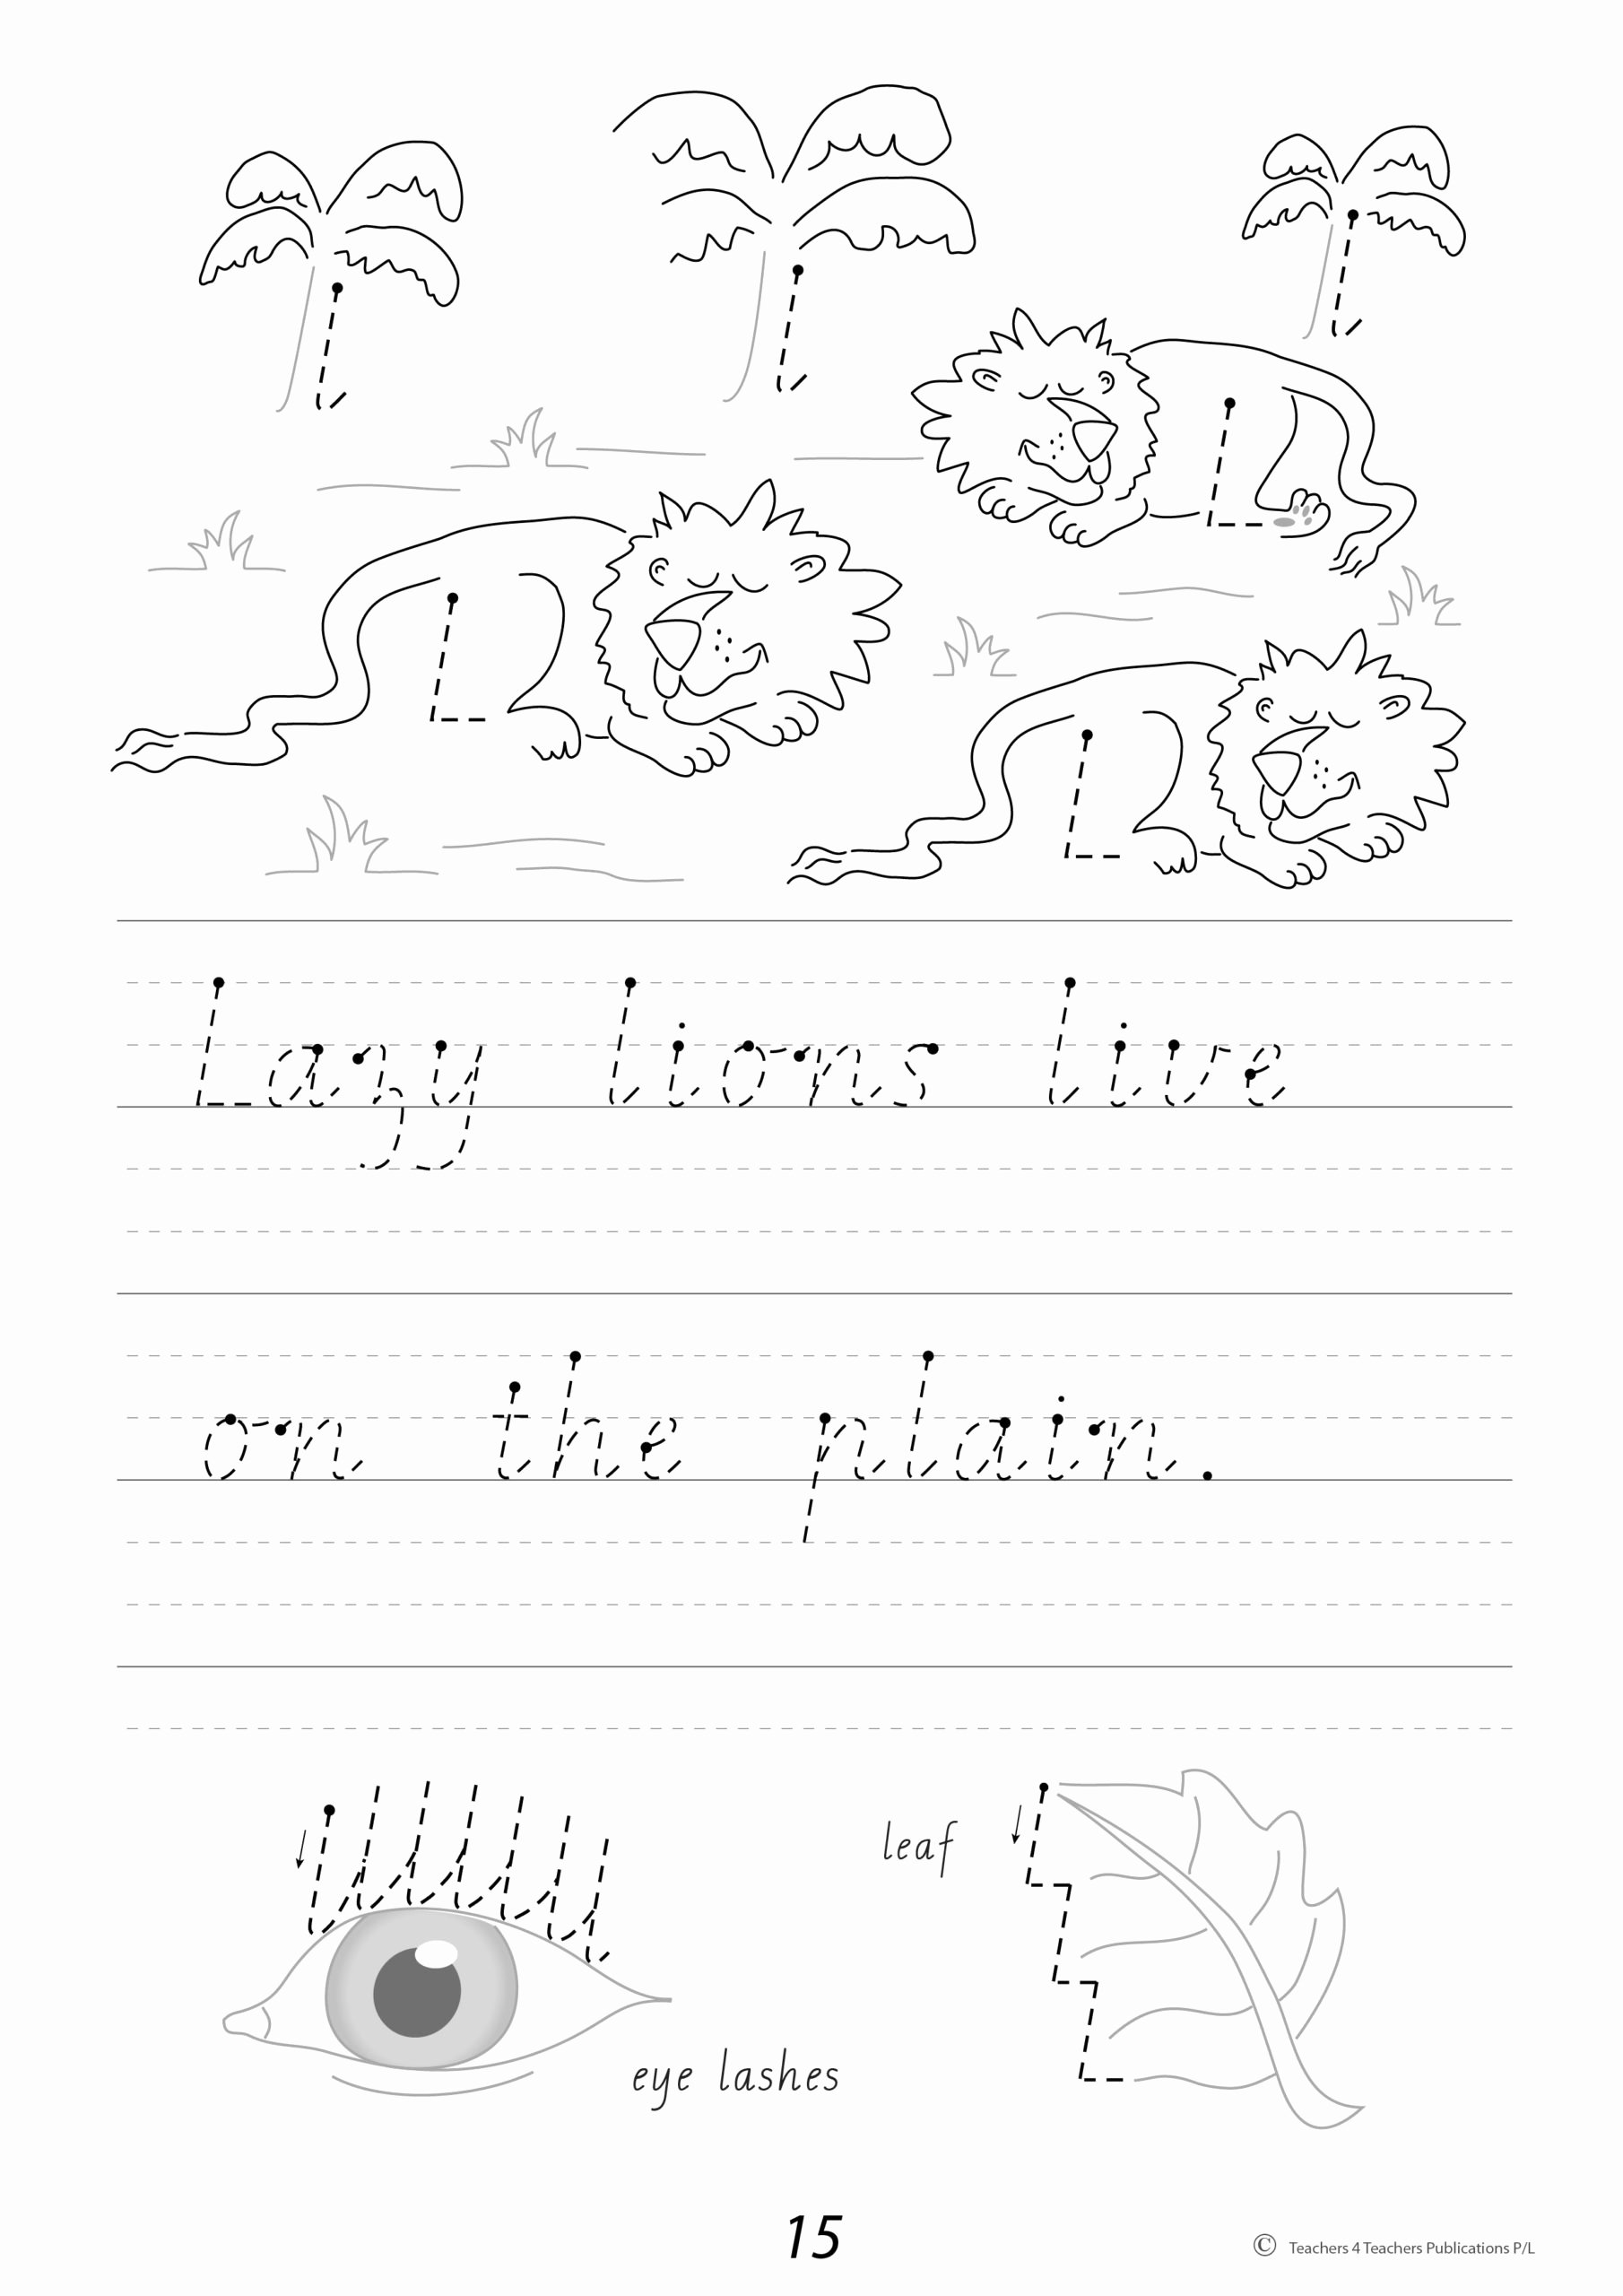 Practice Handwriting Worksheets for Preschoolers Lovely Worksheets Worksheet Free Printable Cursive Worksheets